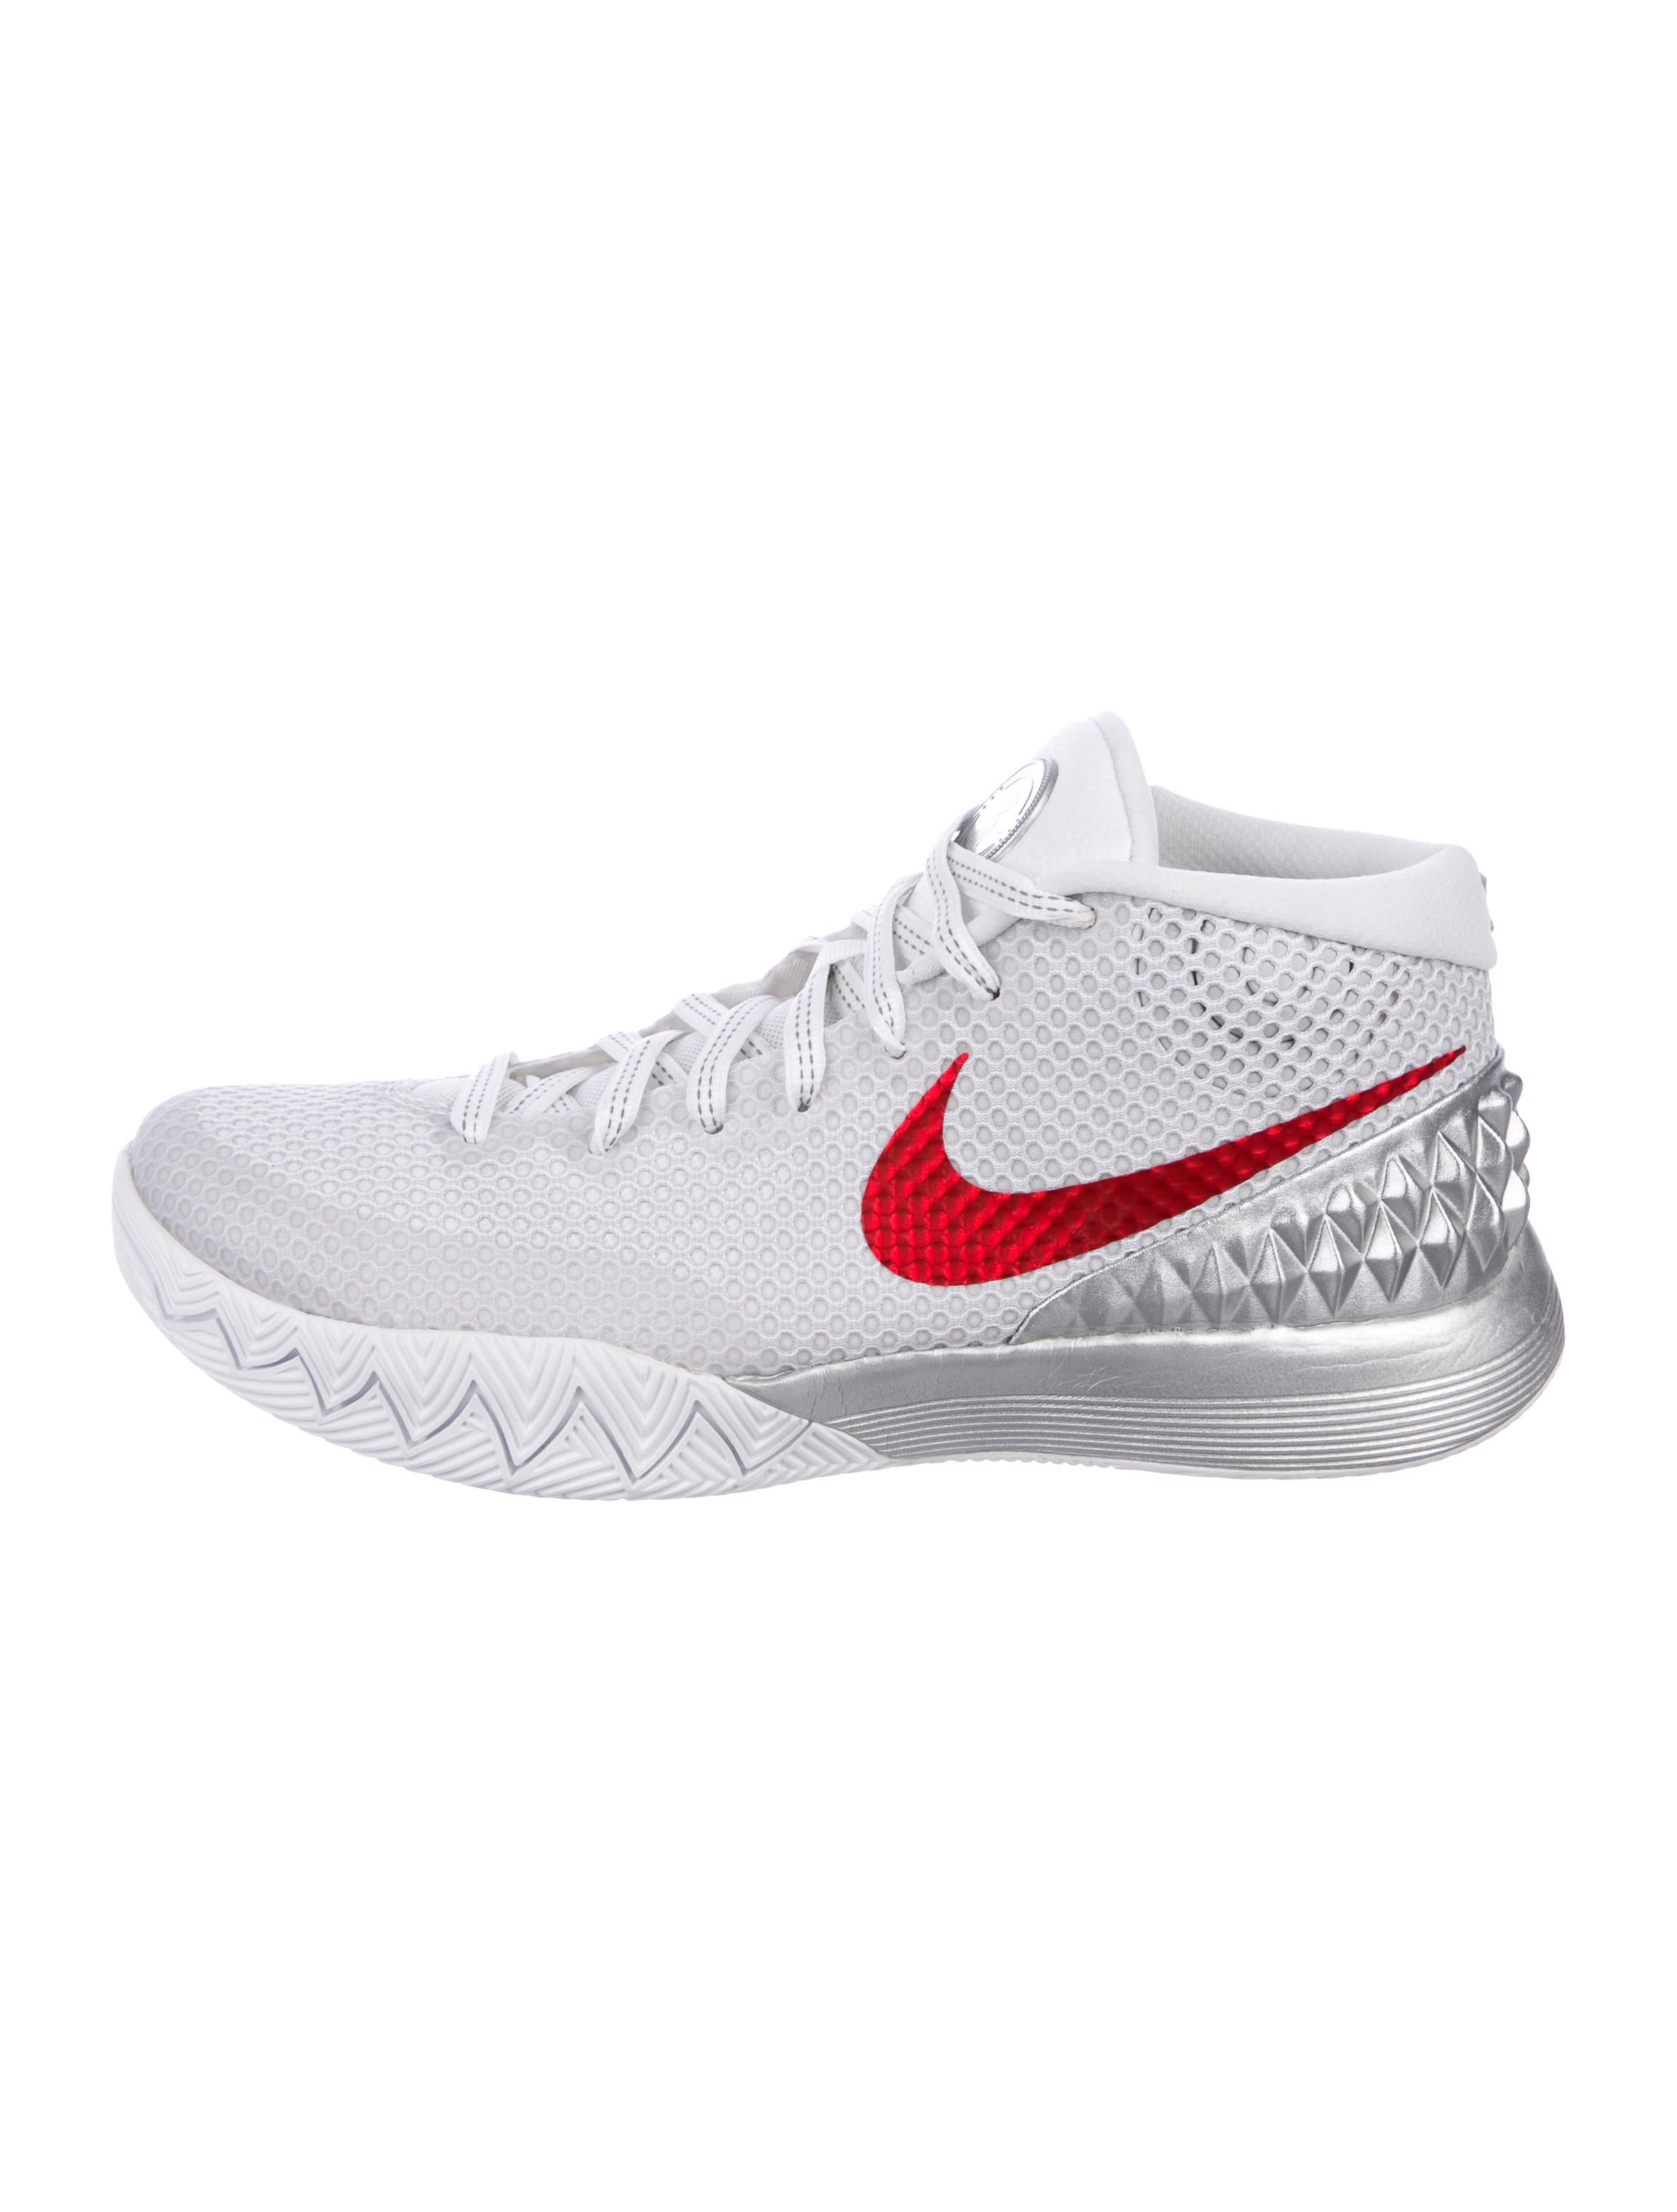 e64d00411814 Nike Kyrie 1 LMTD Sneakers w  Tags - Shoes - WU224283